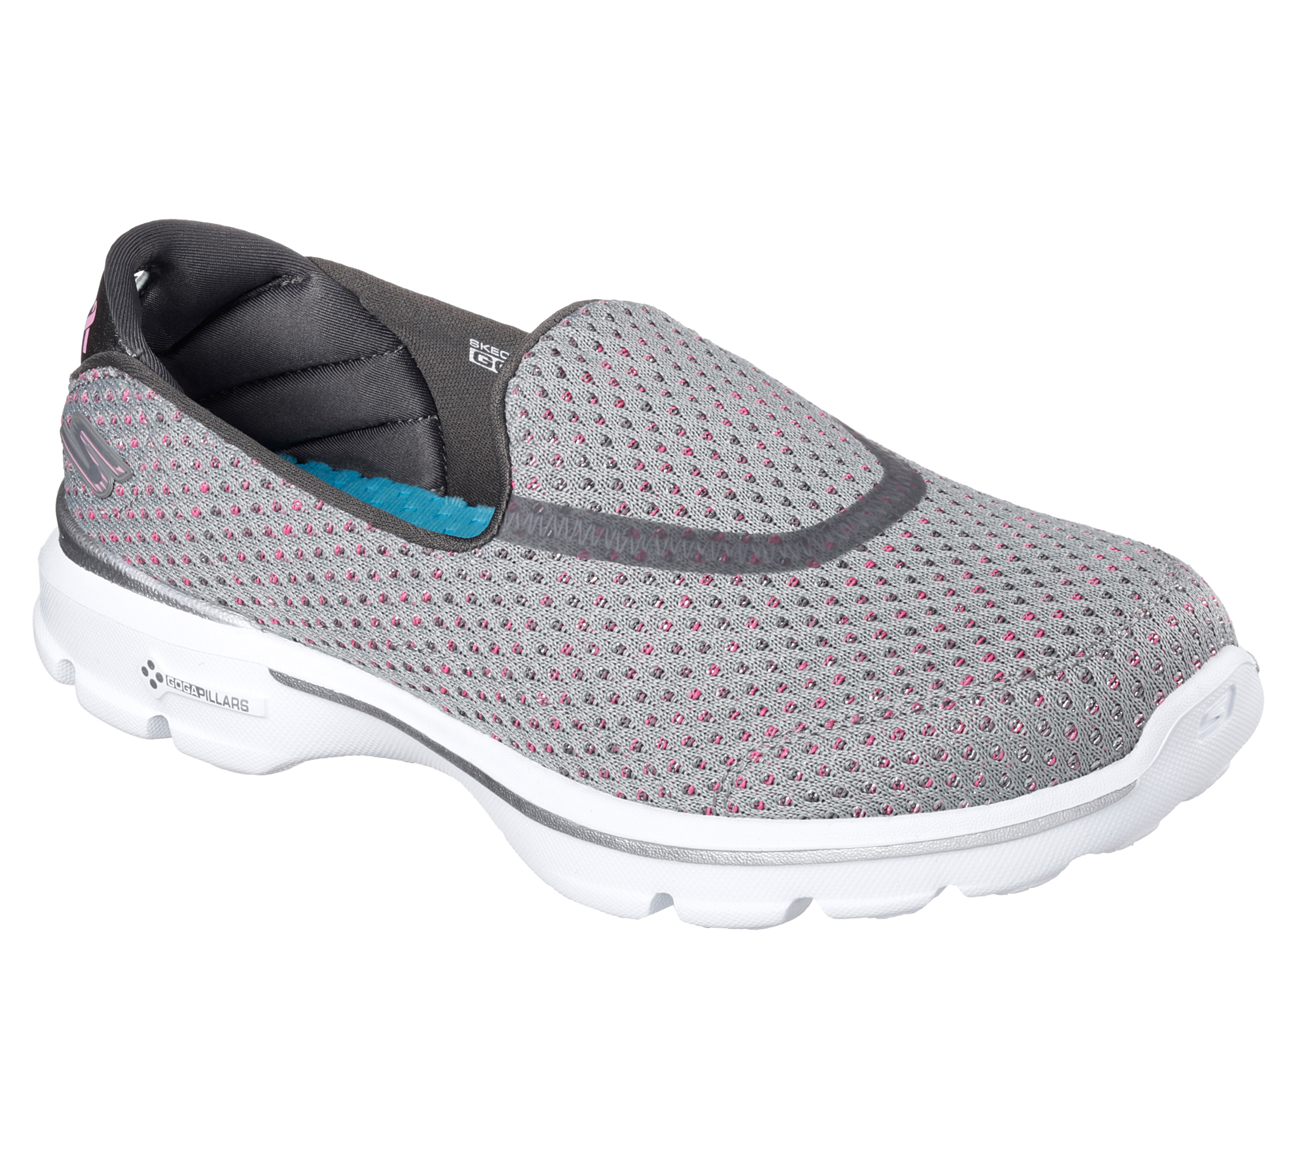 0fc6d9fff6a Buy   zapatos skechers 2016 - 54% OFF! Share discount